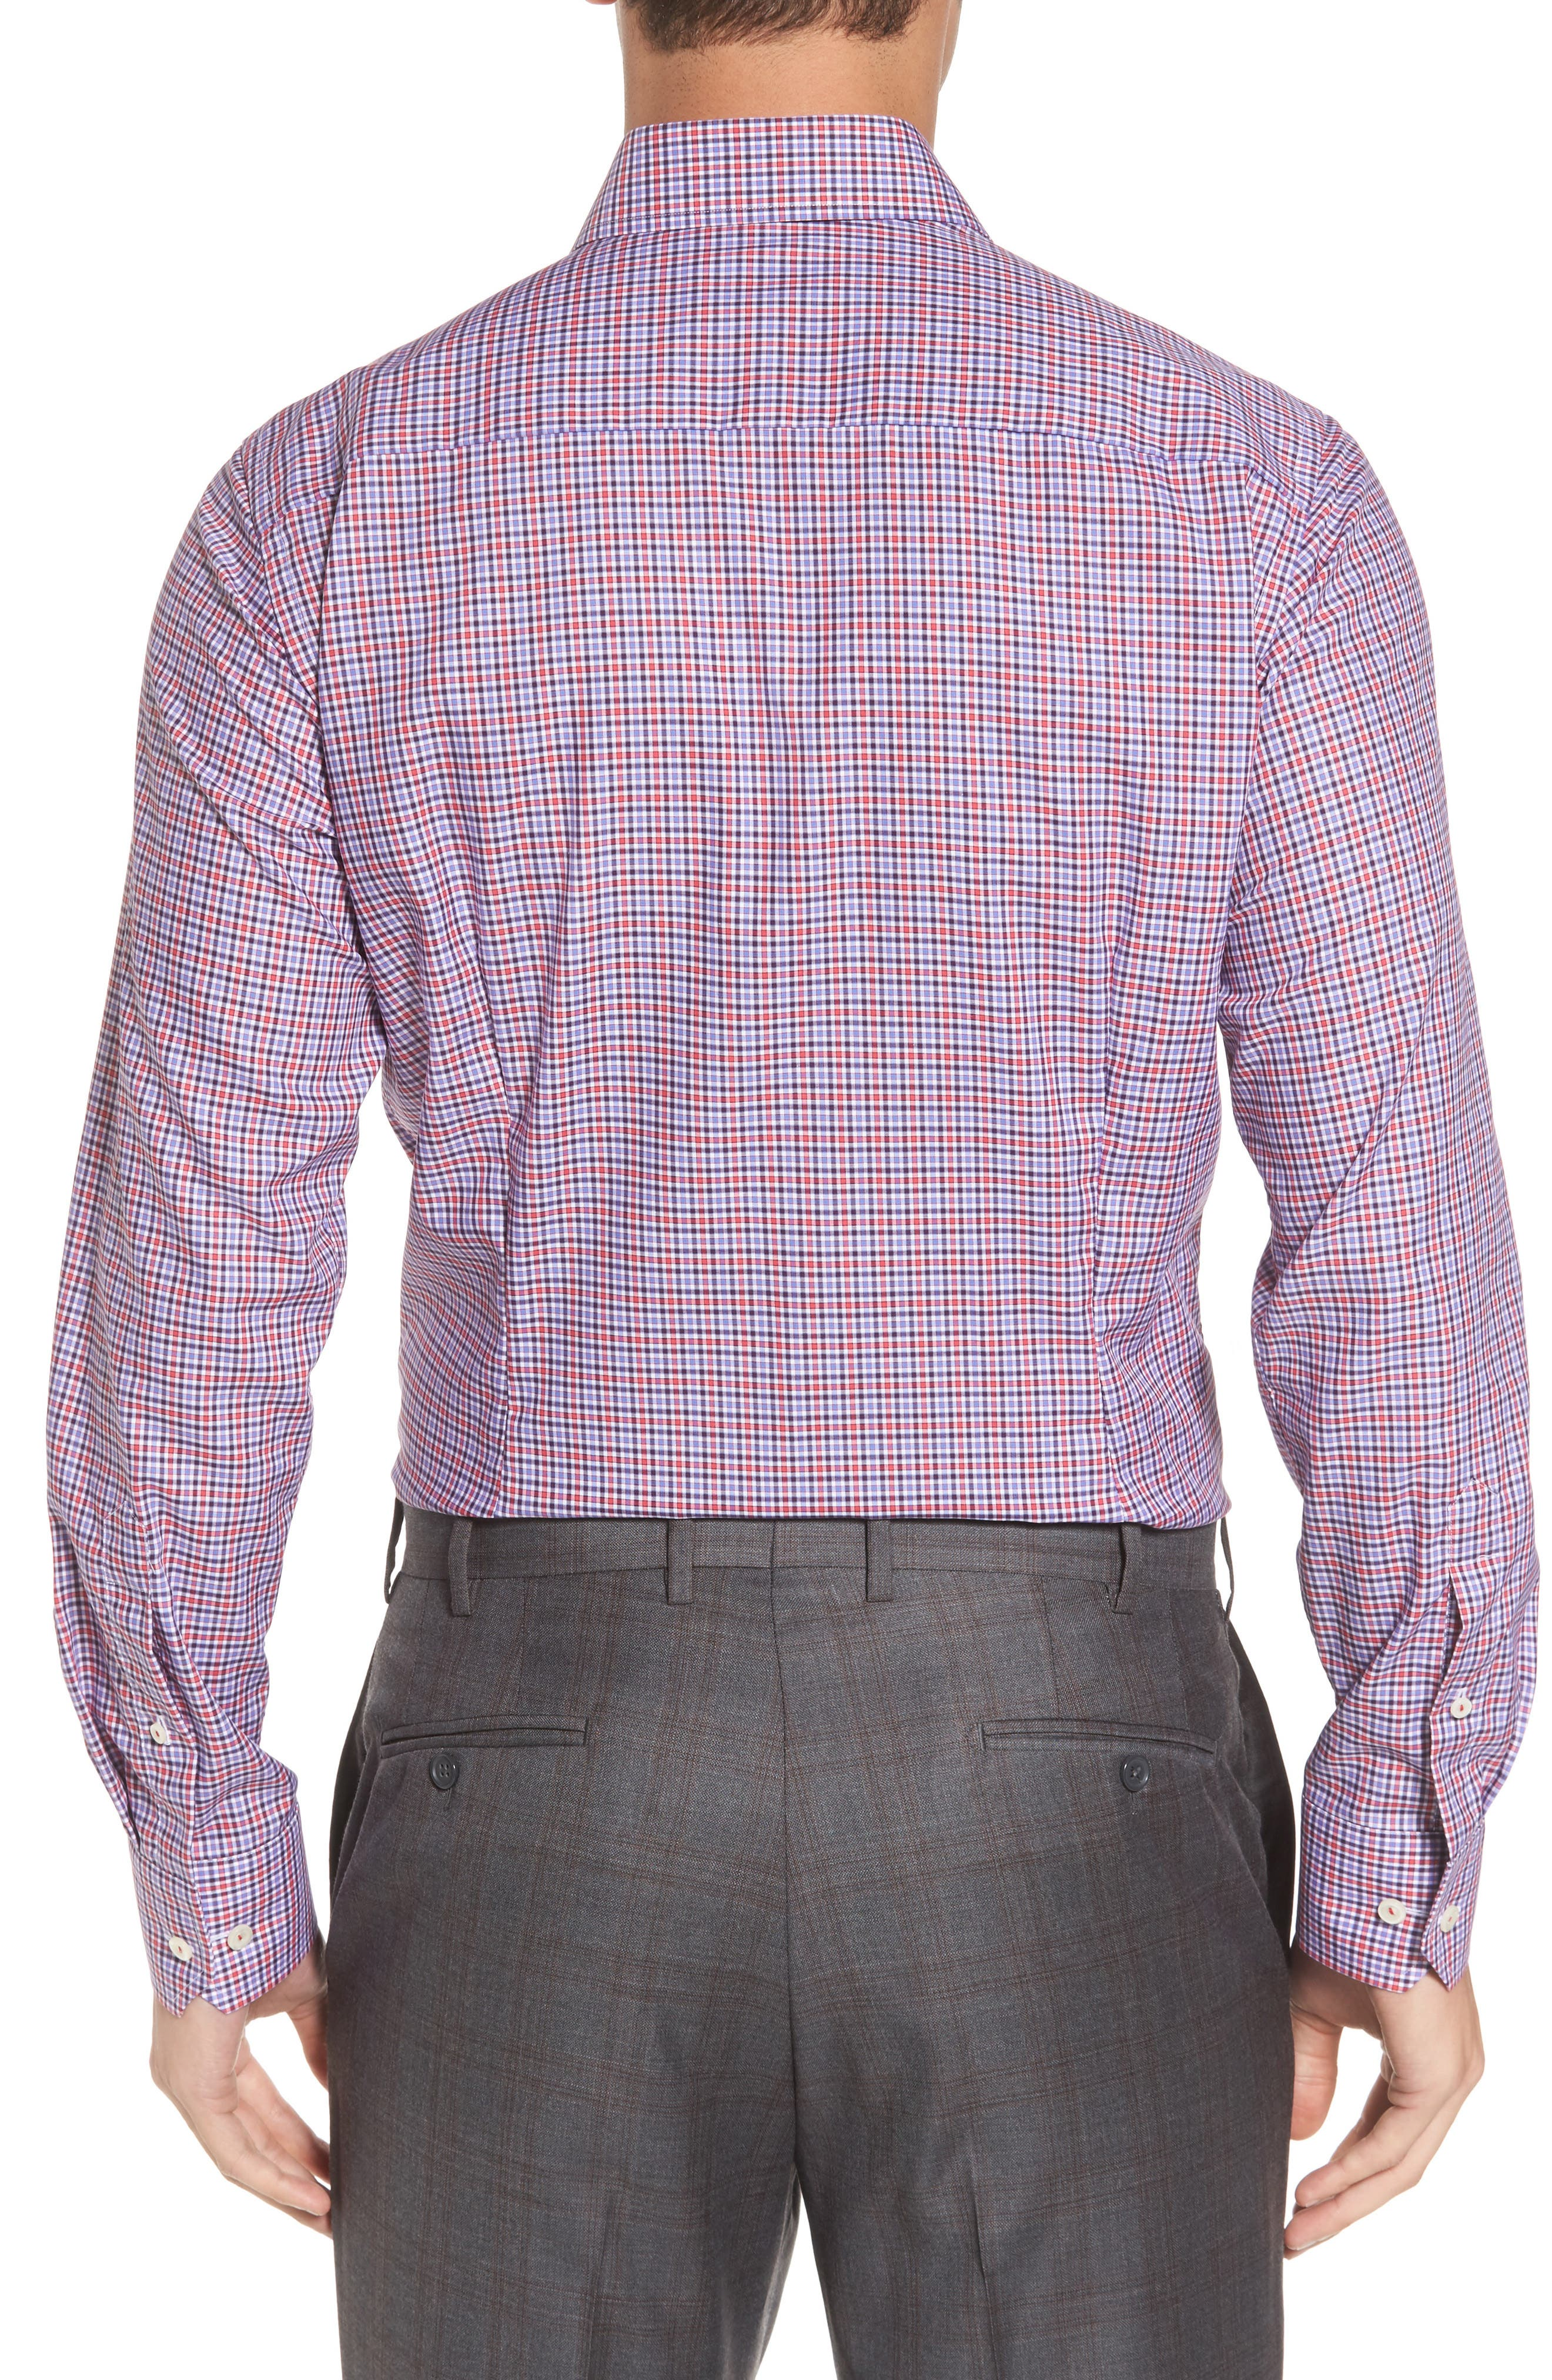 Contemporary Fit Check Dress Shirt,                             Alternate thumbnail 3, color,                             Pink/ Red